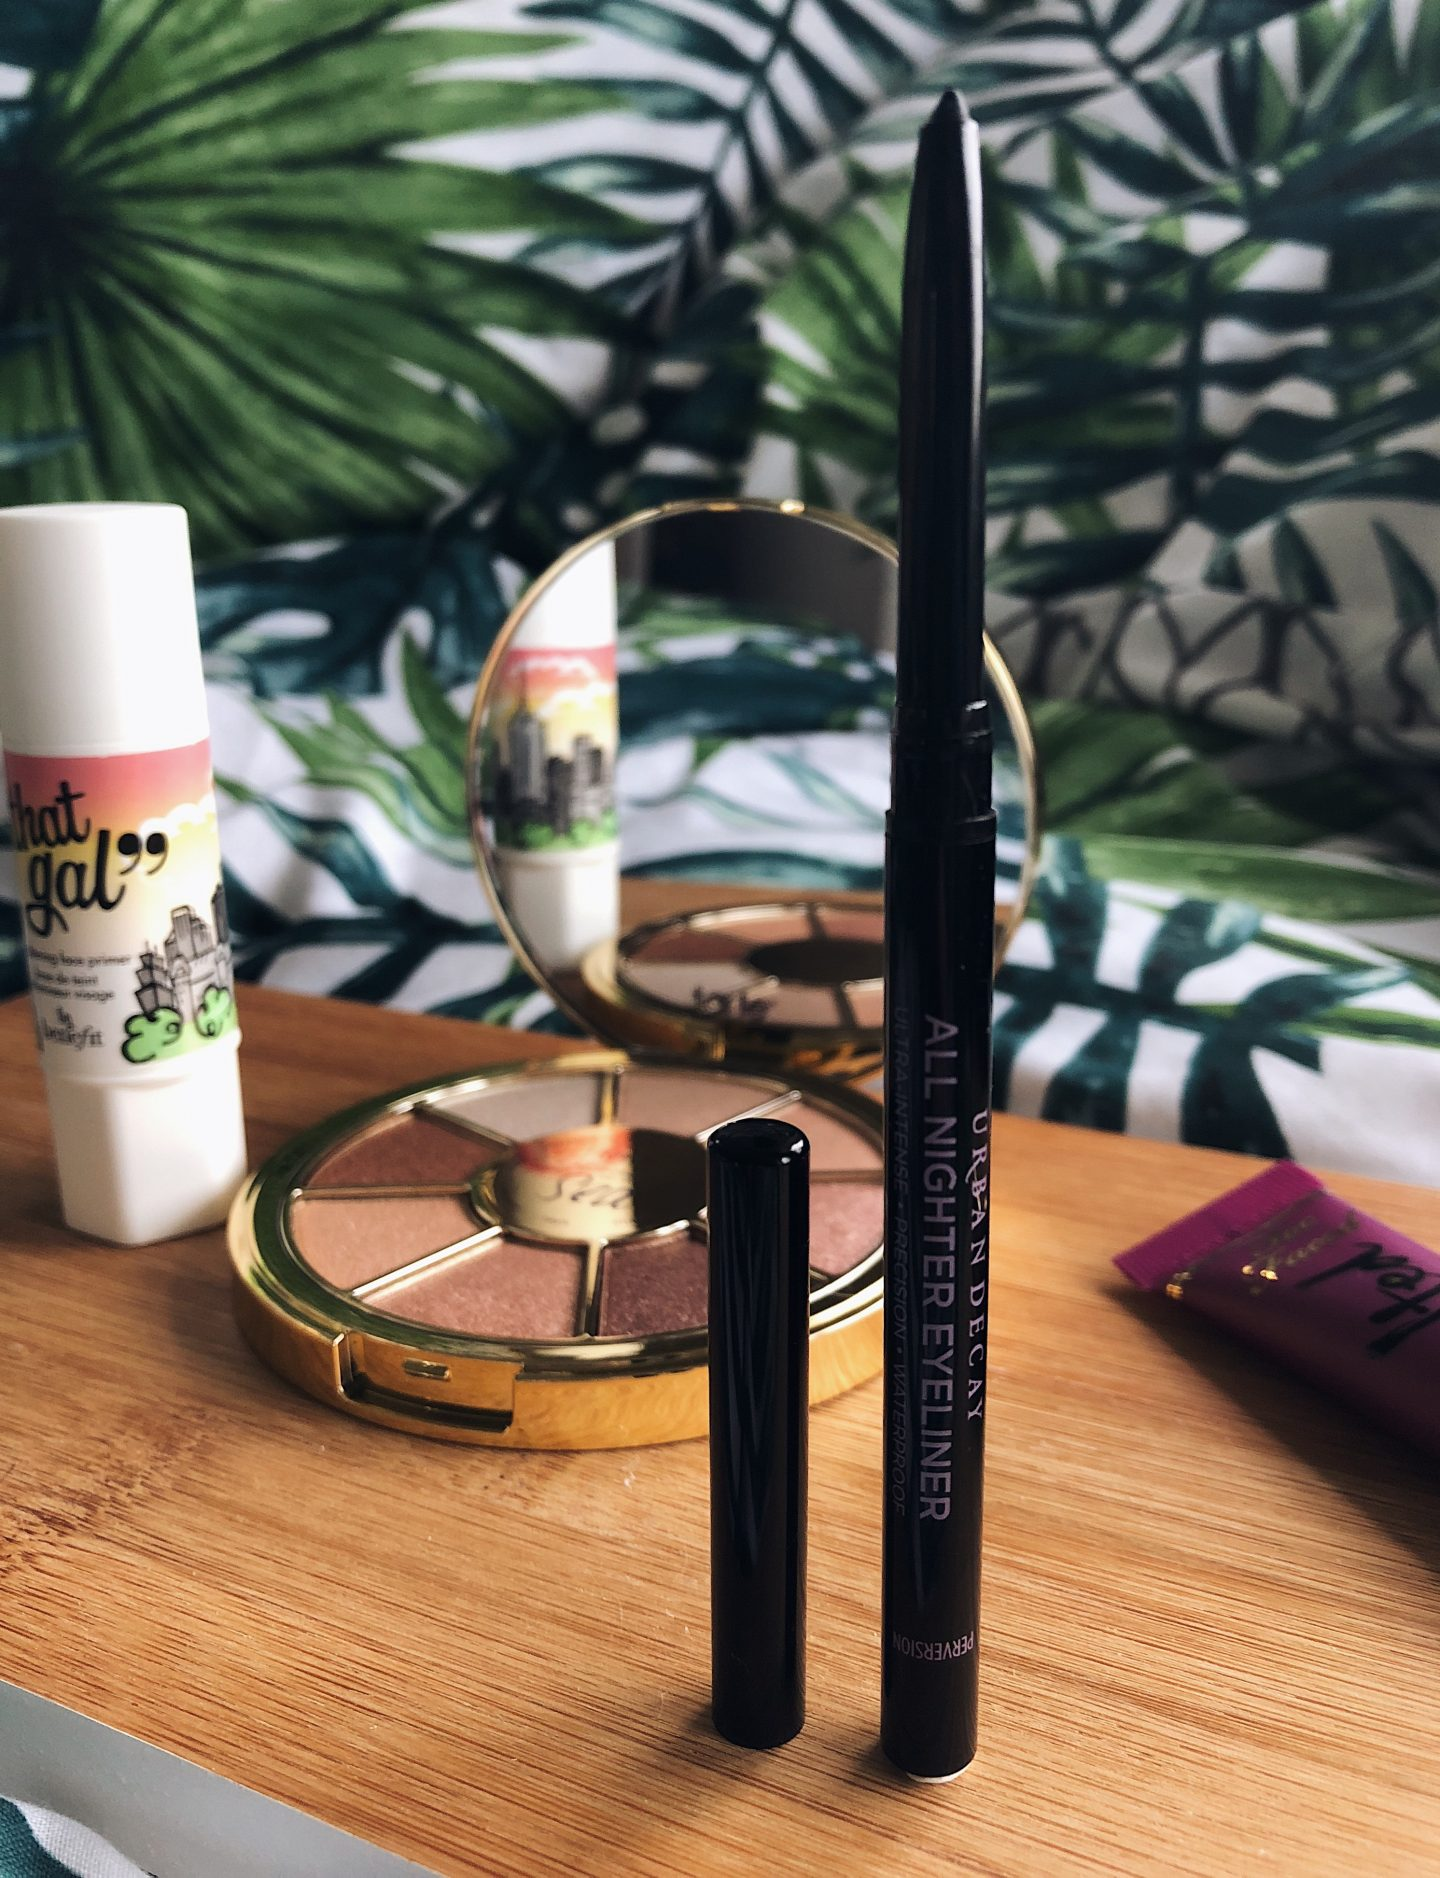 April 2018 Look Incredible Deluxe Subscription Box - urban decay all nighter eyeliner waterproof perversion